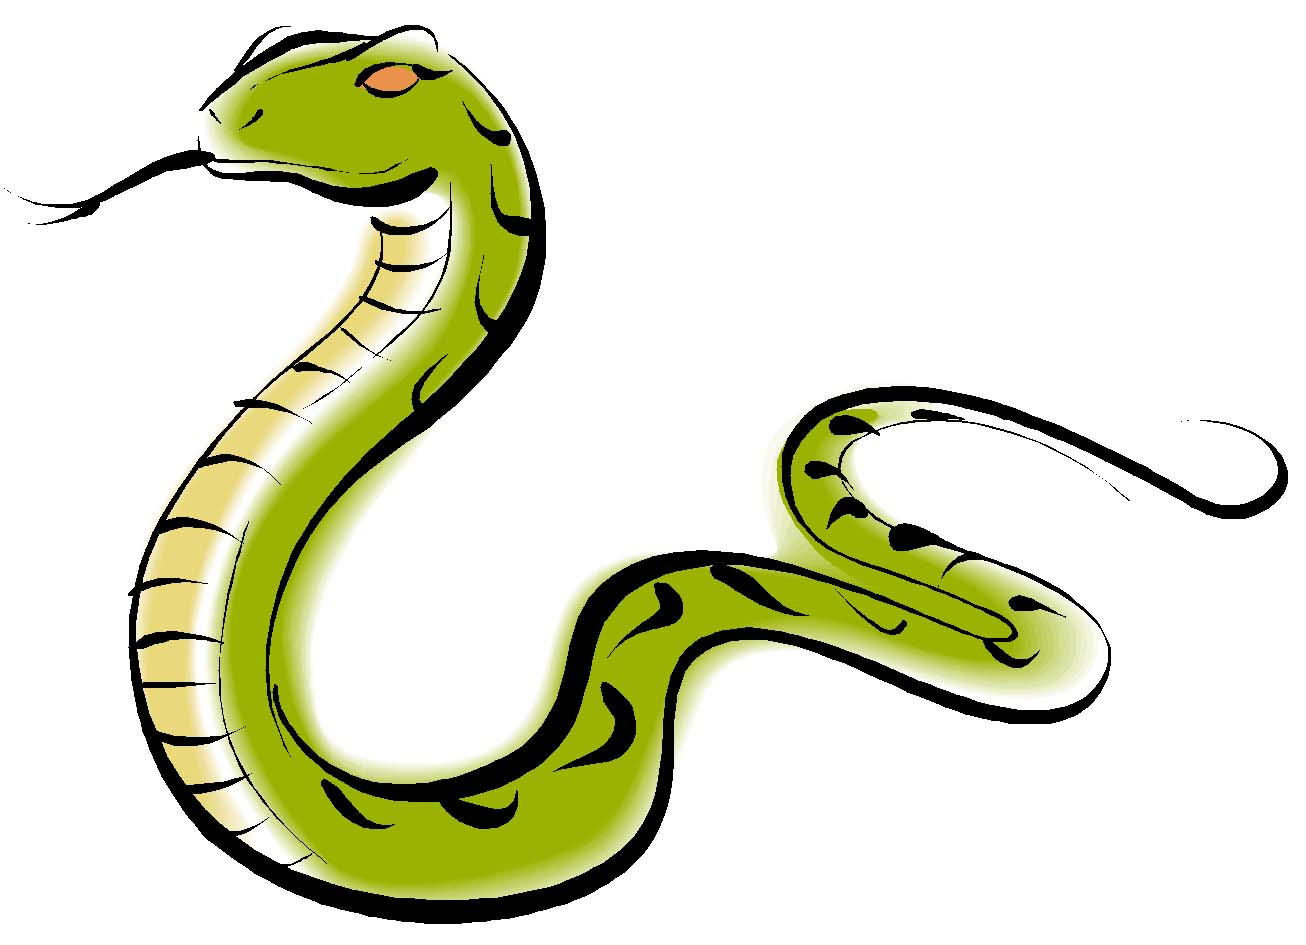 Snake pictures clipart image freeuse Free Snake Cliparts, Download Free Clip Art, Free Clip Art ... image freeuse